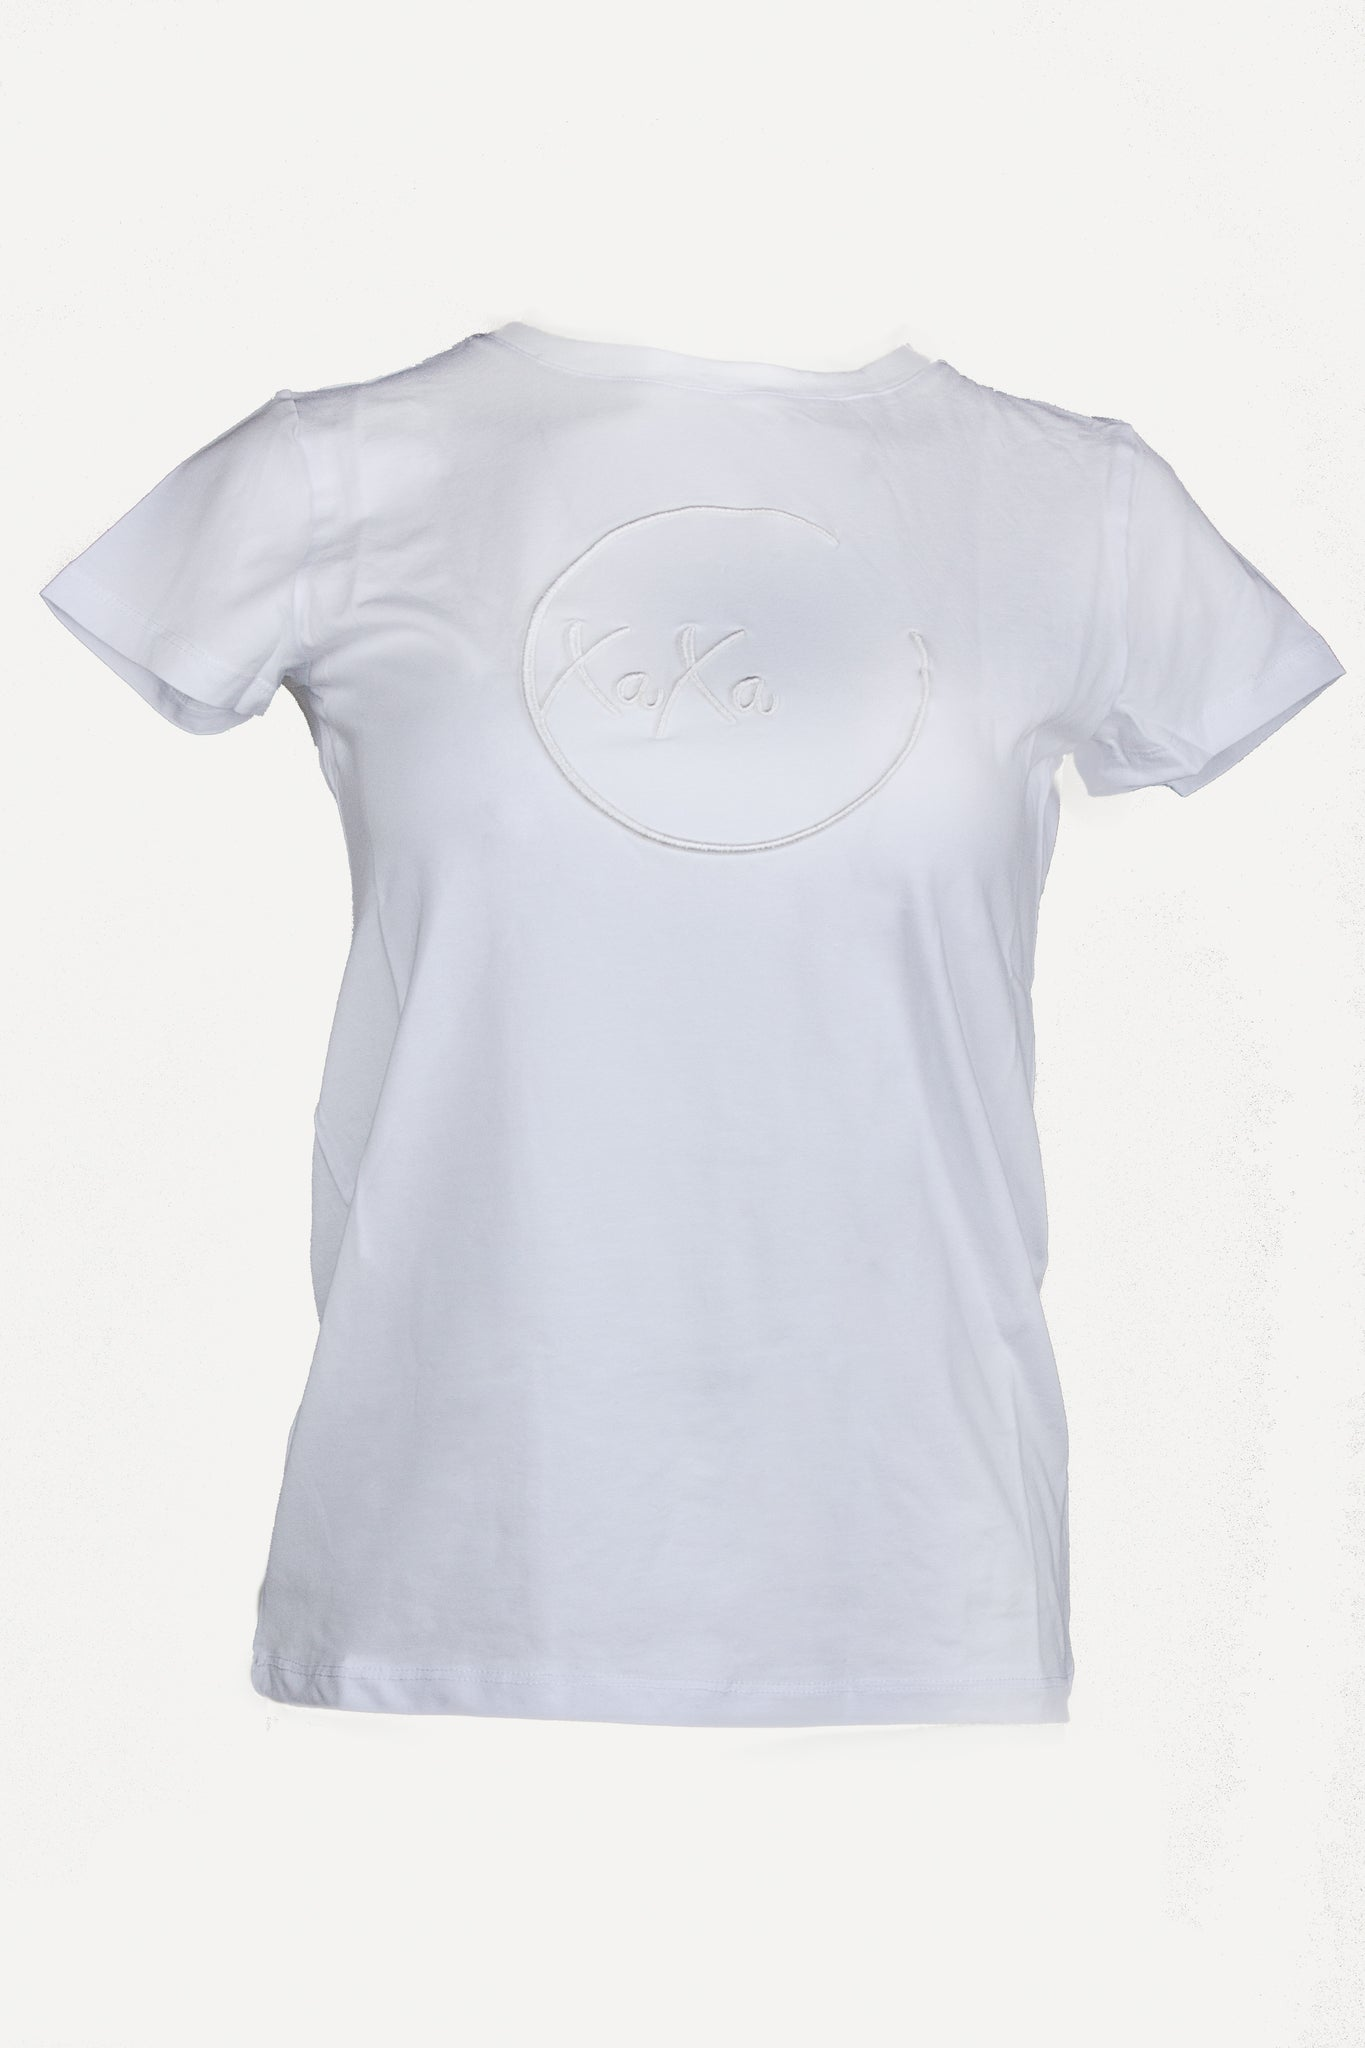 XaXa - White Logo on White T-Shirt